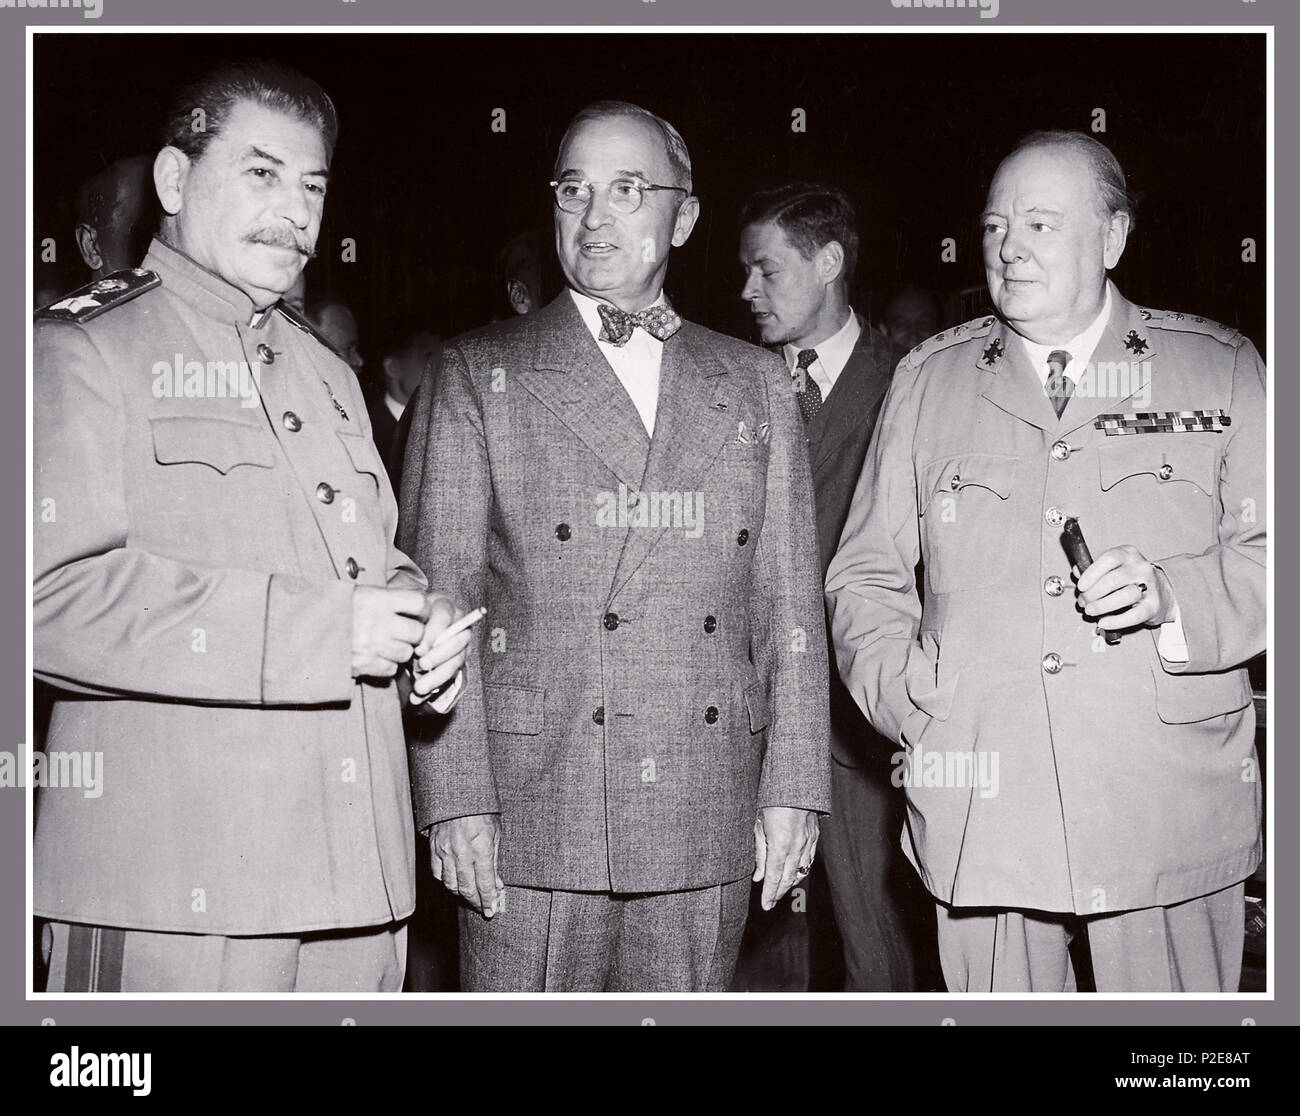 1945 POTSDAM STALIN TRUMAN CHURCHILL The Potsdam Conference was held at Cecilienhof, the home of Crown Prince Wilhelm, in Potsdam, occupied Germany, from 17 July to 2 August 1945. Three Heads of Government from the USSR, USA and UK The participants were the Soviet Union, the United Kingdom, and the United States, represented by Communist Party General Secretary Joseph Stalin, President Harry S. Truman and Prime Minister Winston Churchill - Stock Image